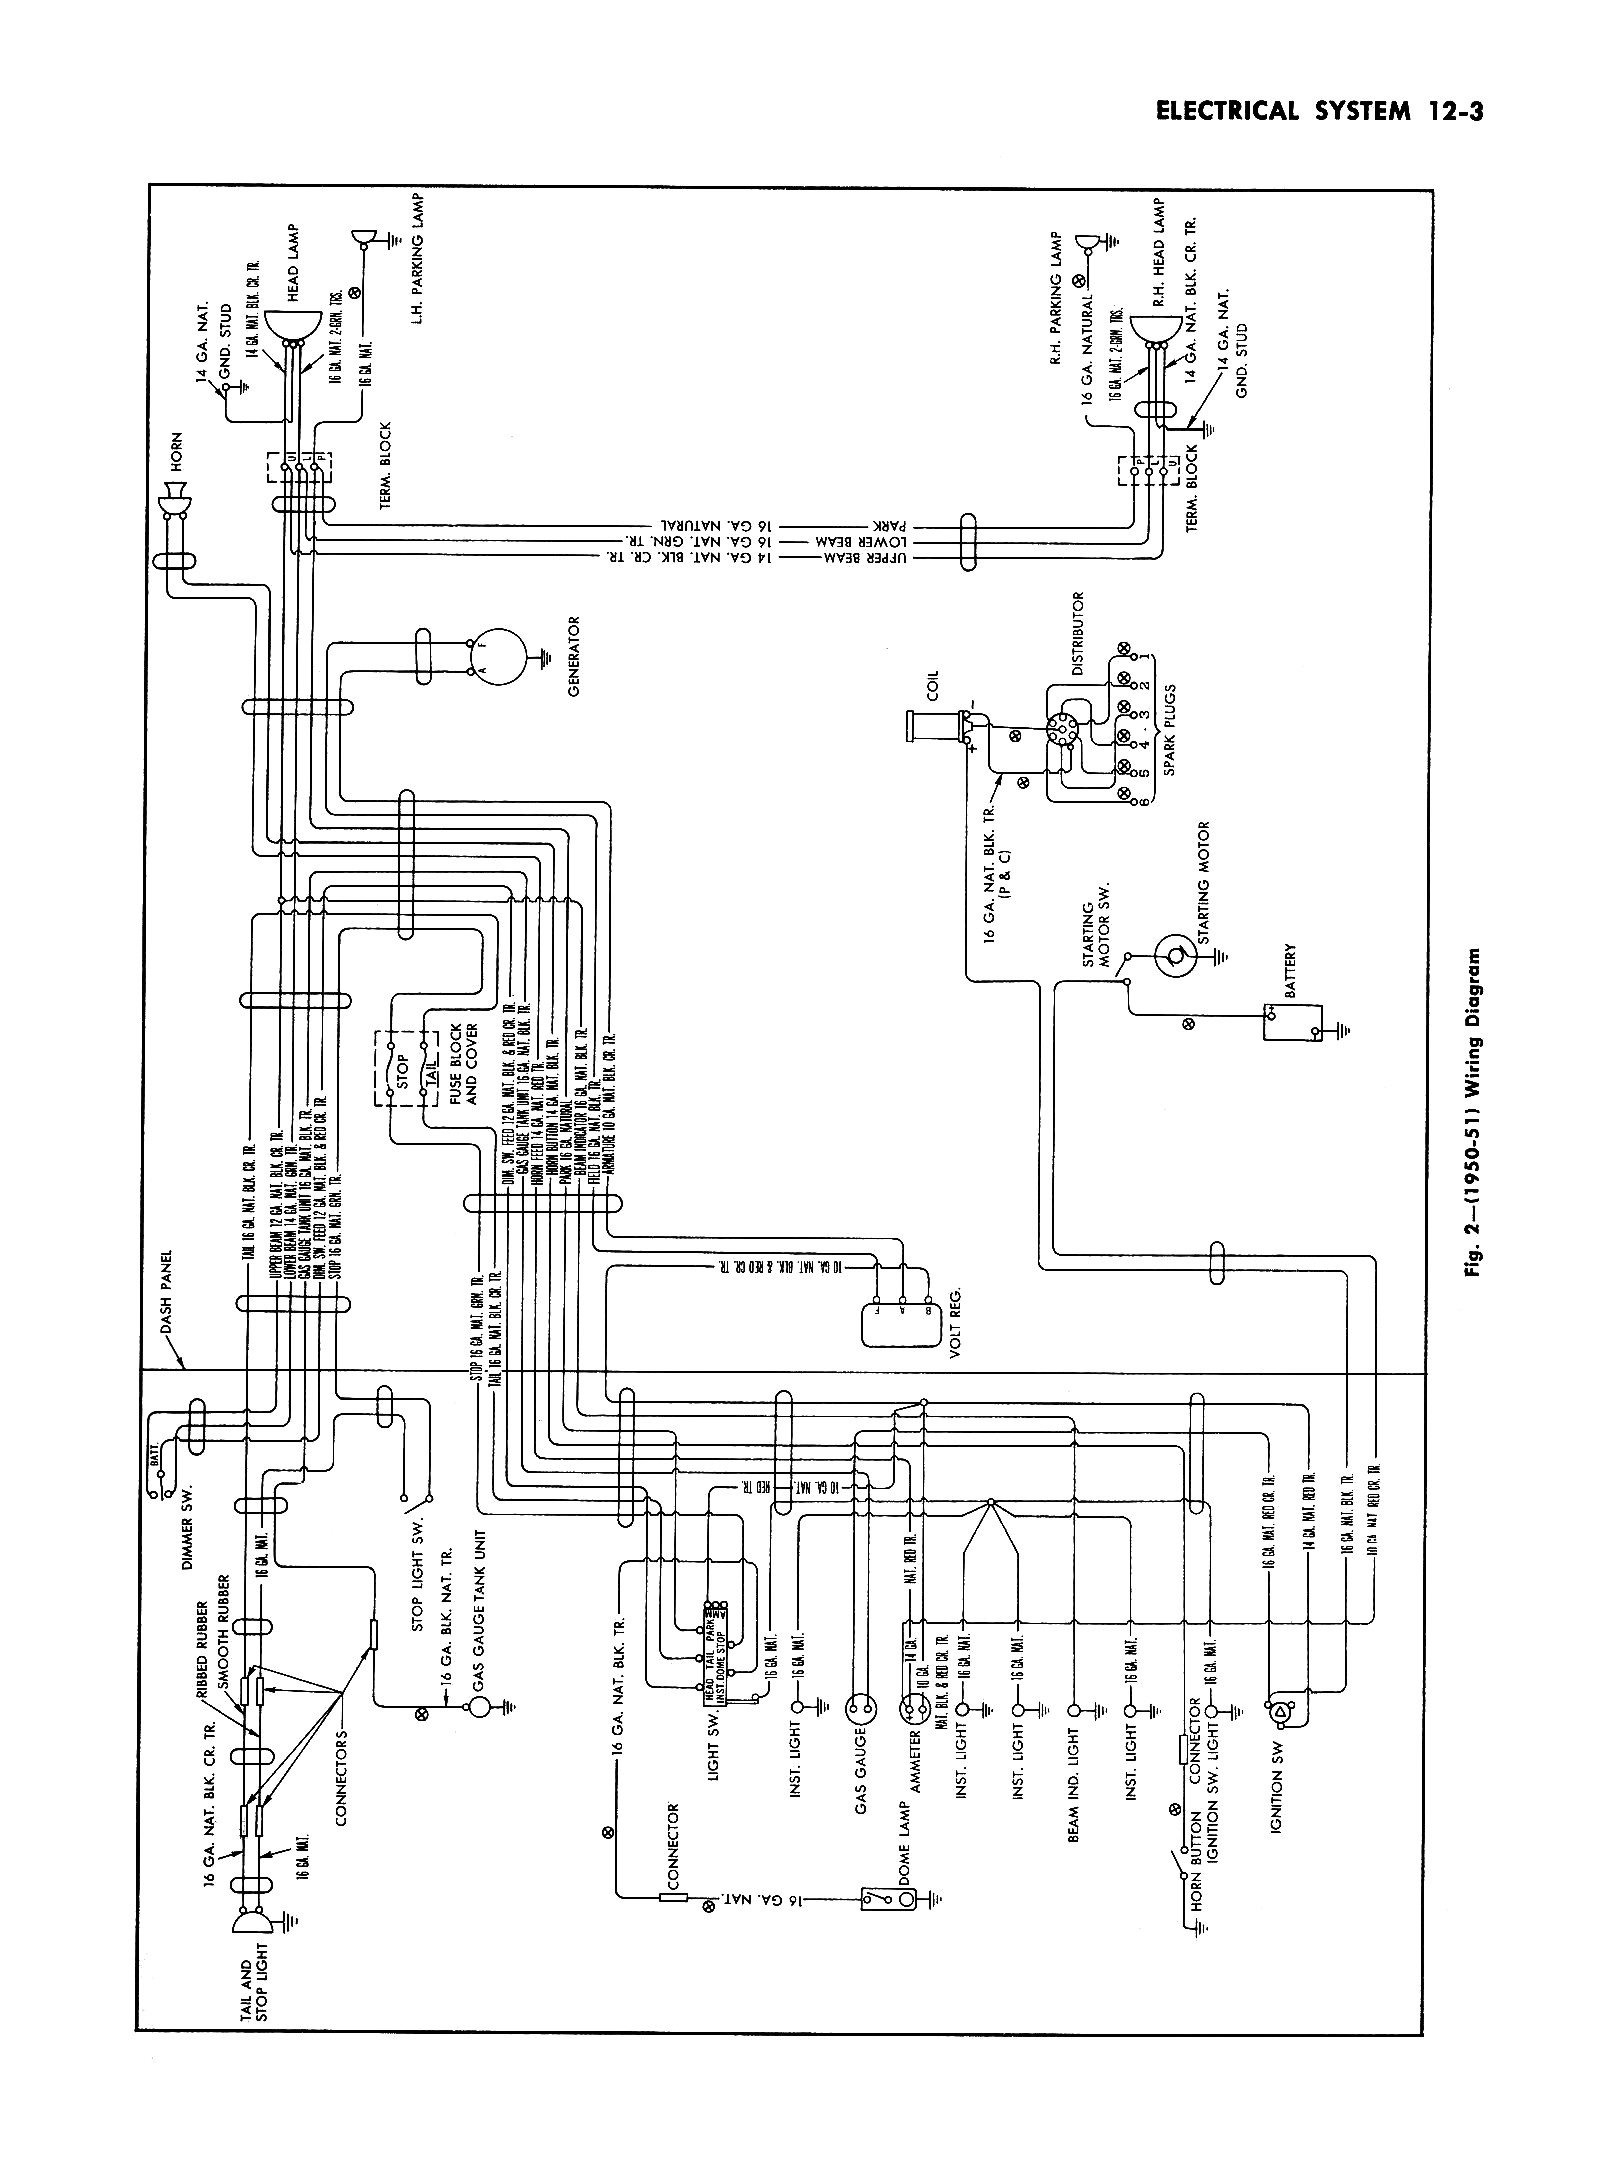 headlight switch wiring diagram 1949 pontiac country coach headlight switch wiring diagram